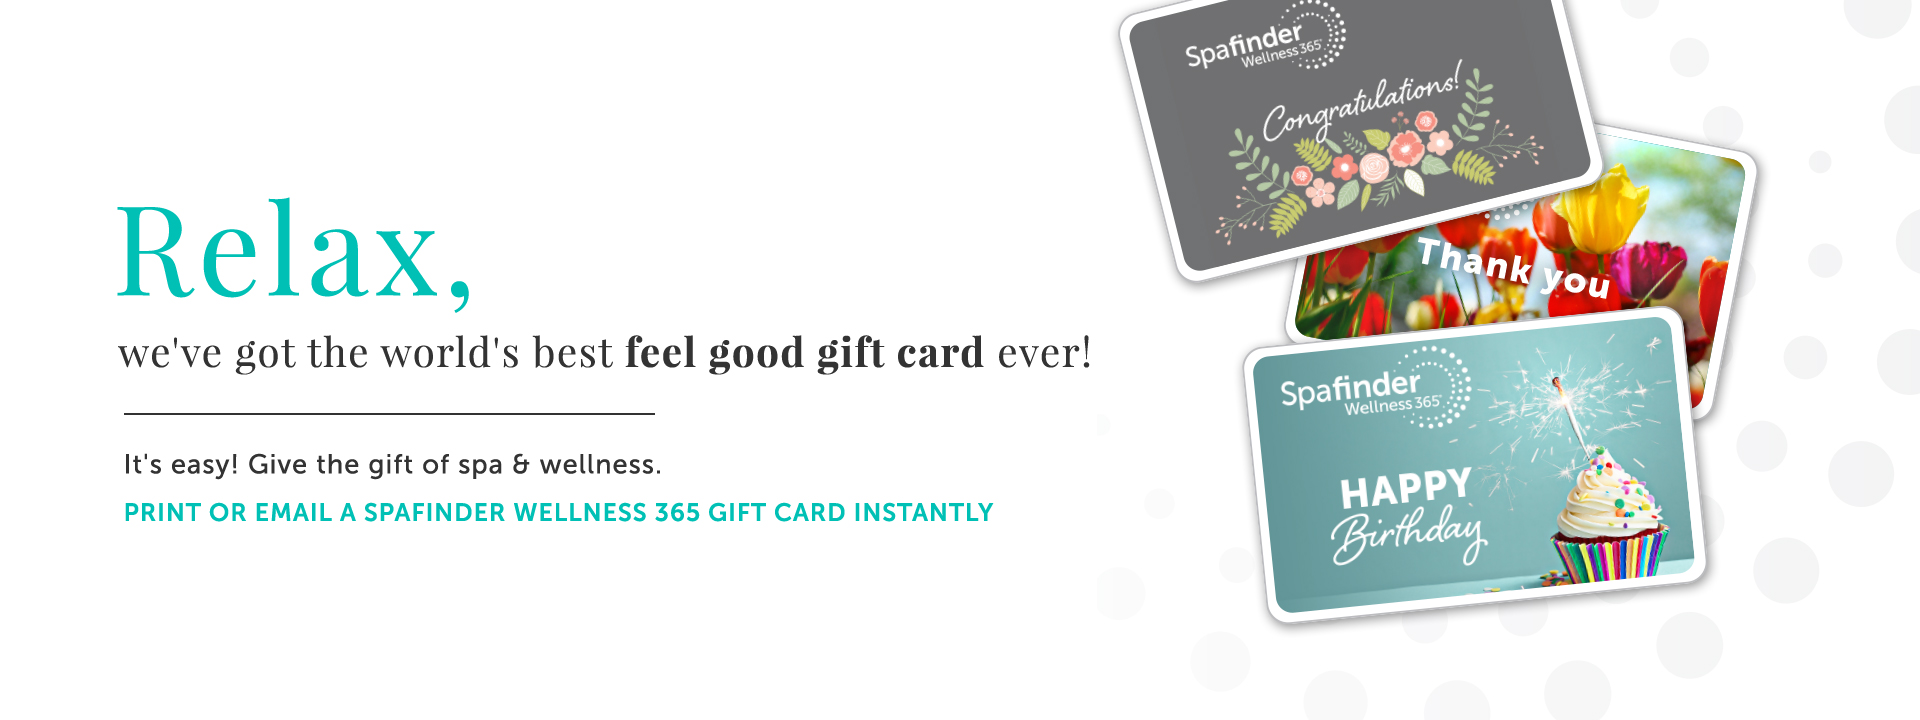 Relax, we've got the world's best feel good gift card ever! Print or email a Spafinder Wellness 365 gift card instantly. Shop Gift Cards.